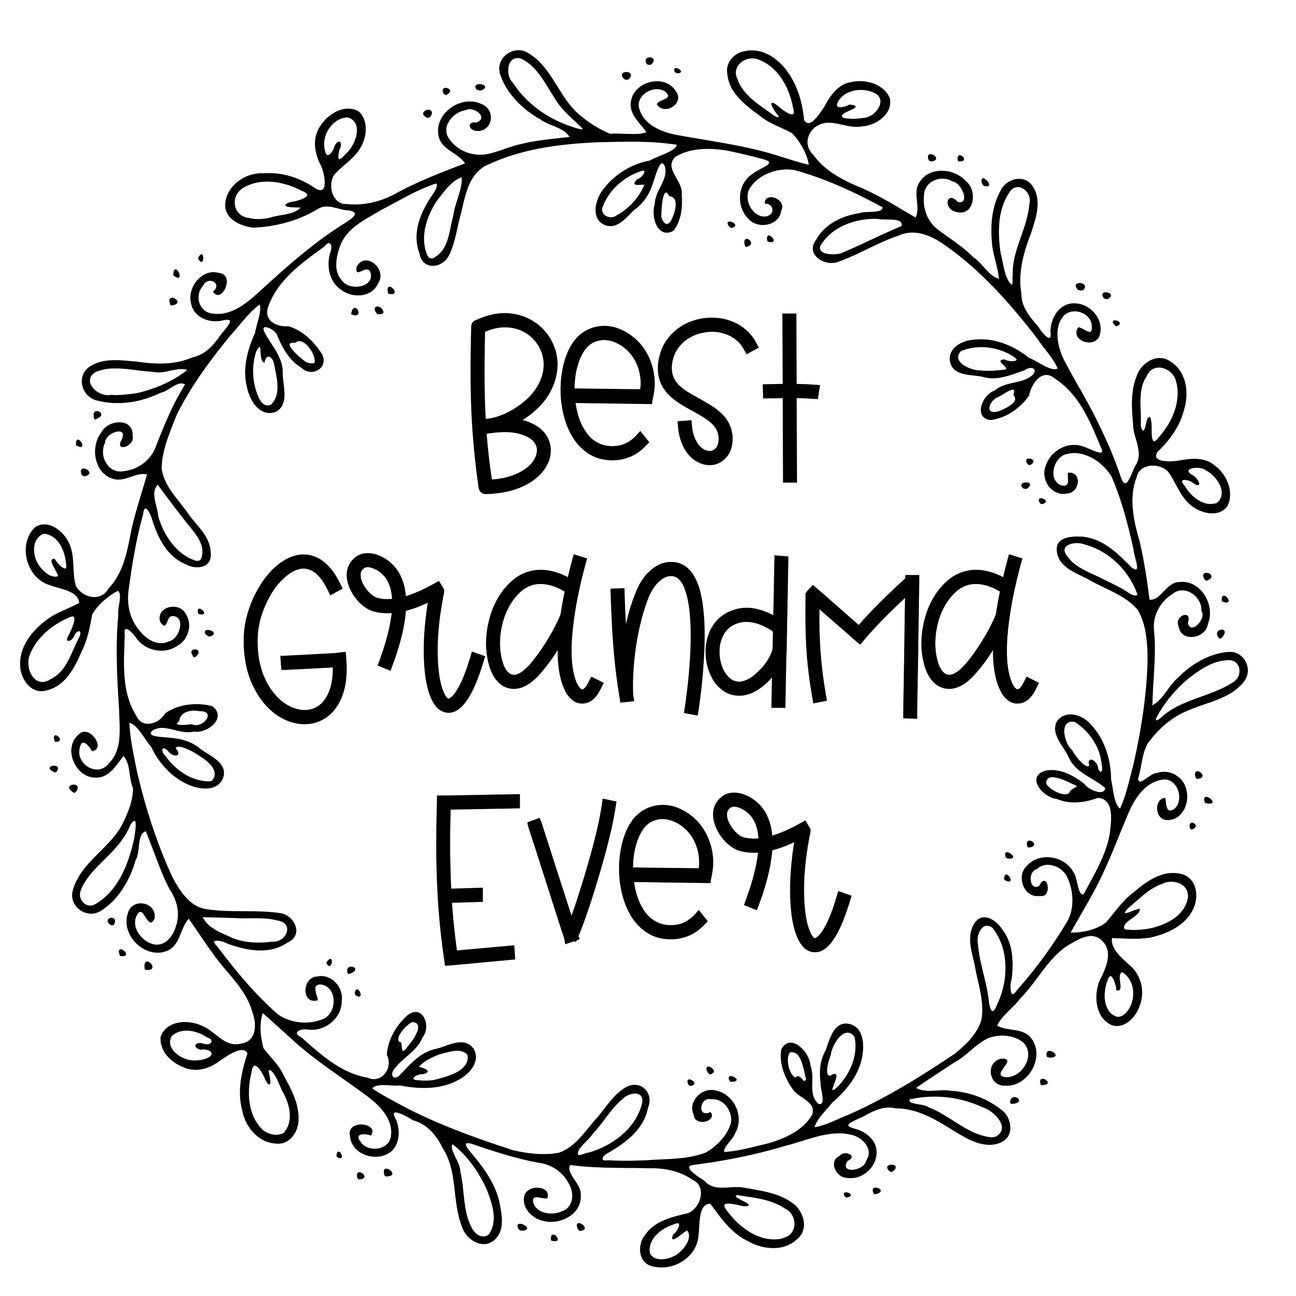 Svg Best Grandma Ever Digital Svg File Gift For Mom Mother S Day M Wildflowerloft Diy Blankboards Signblanks Makeyour Best Mom Mom Etsy Gifts For Mom